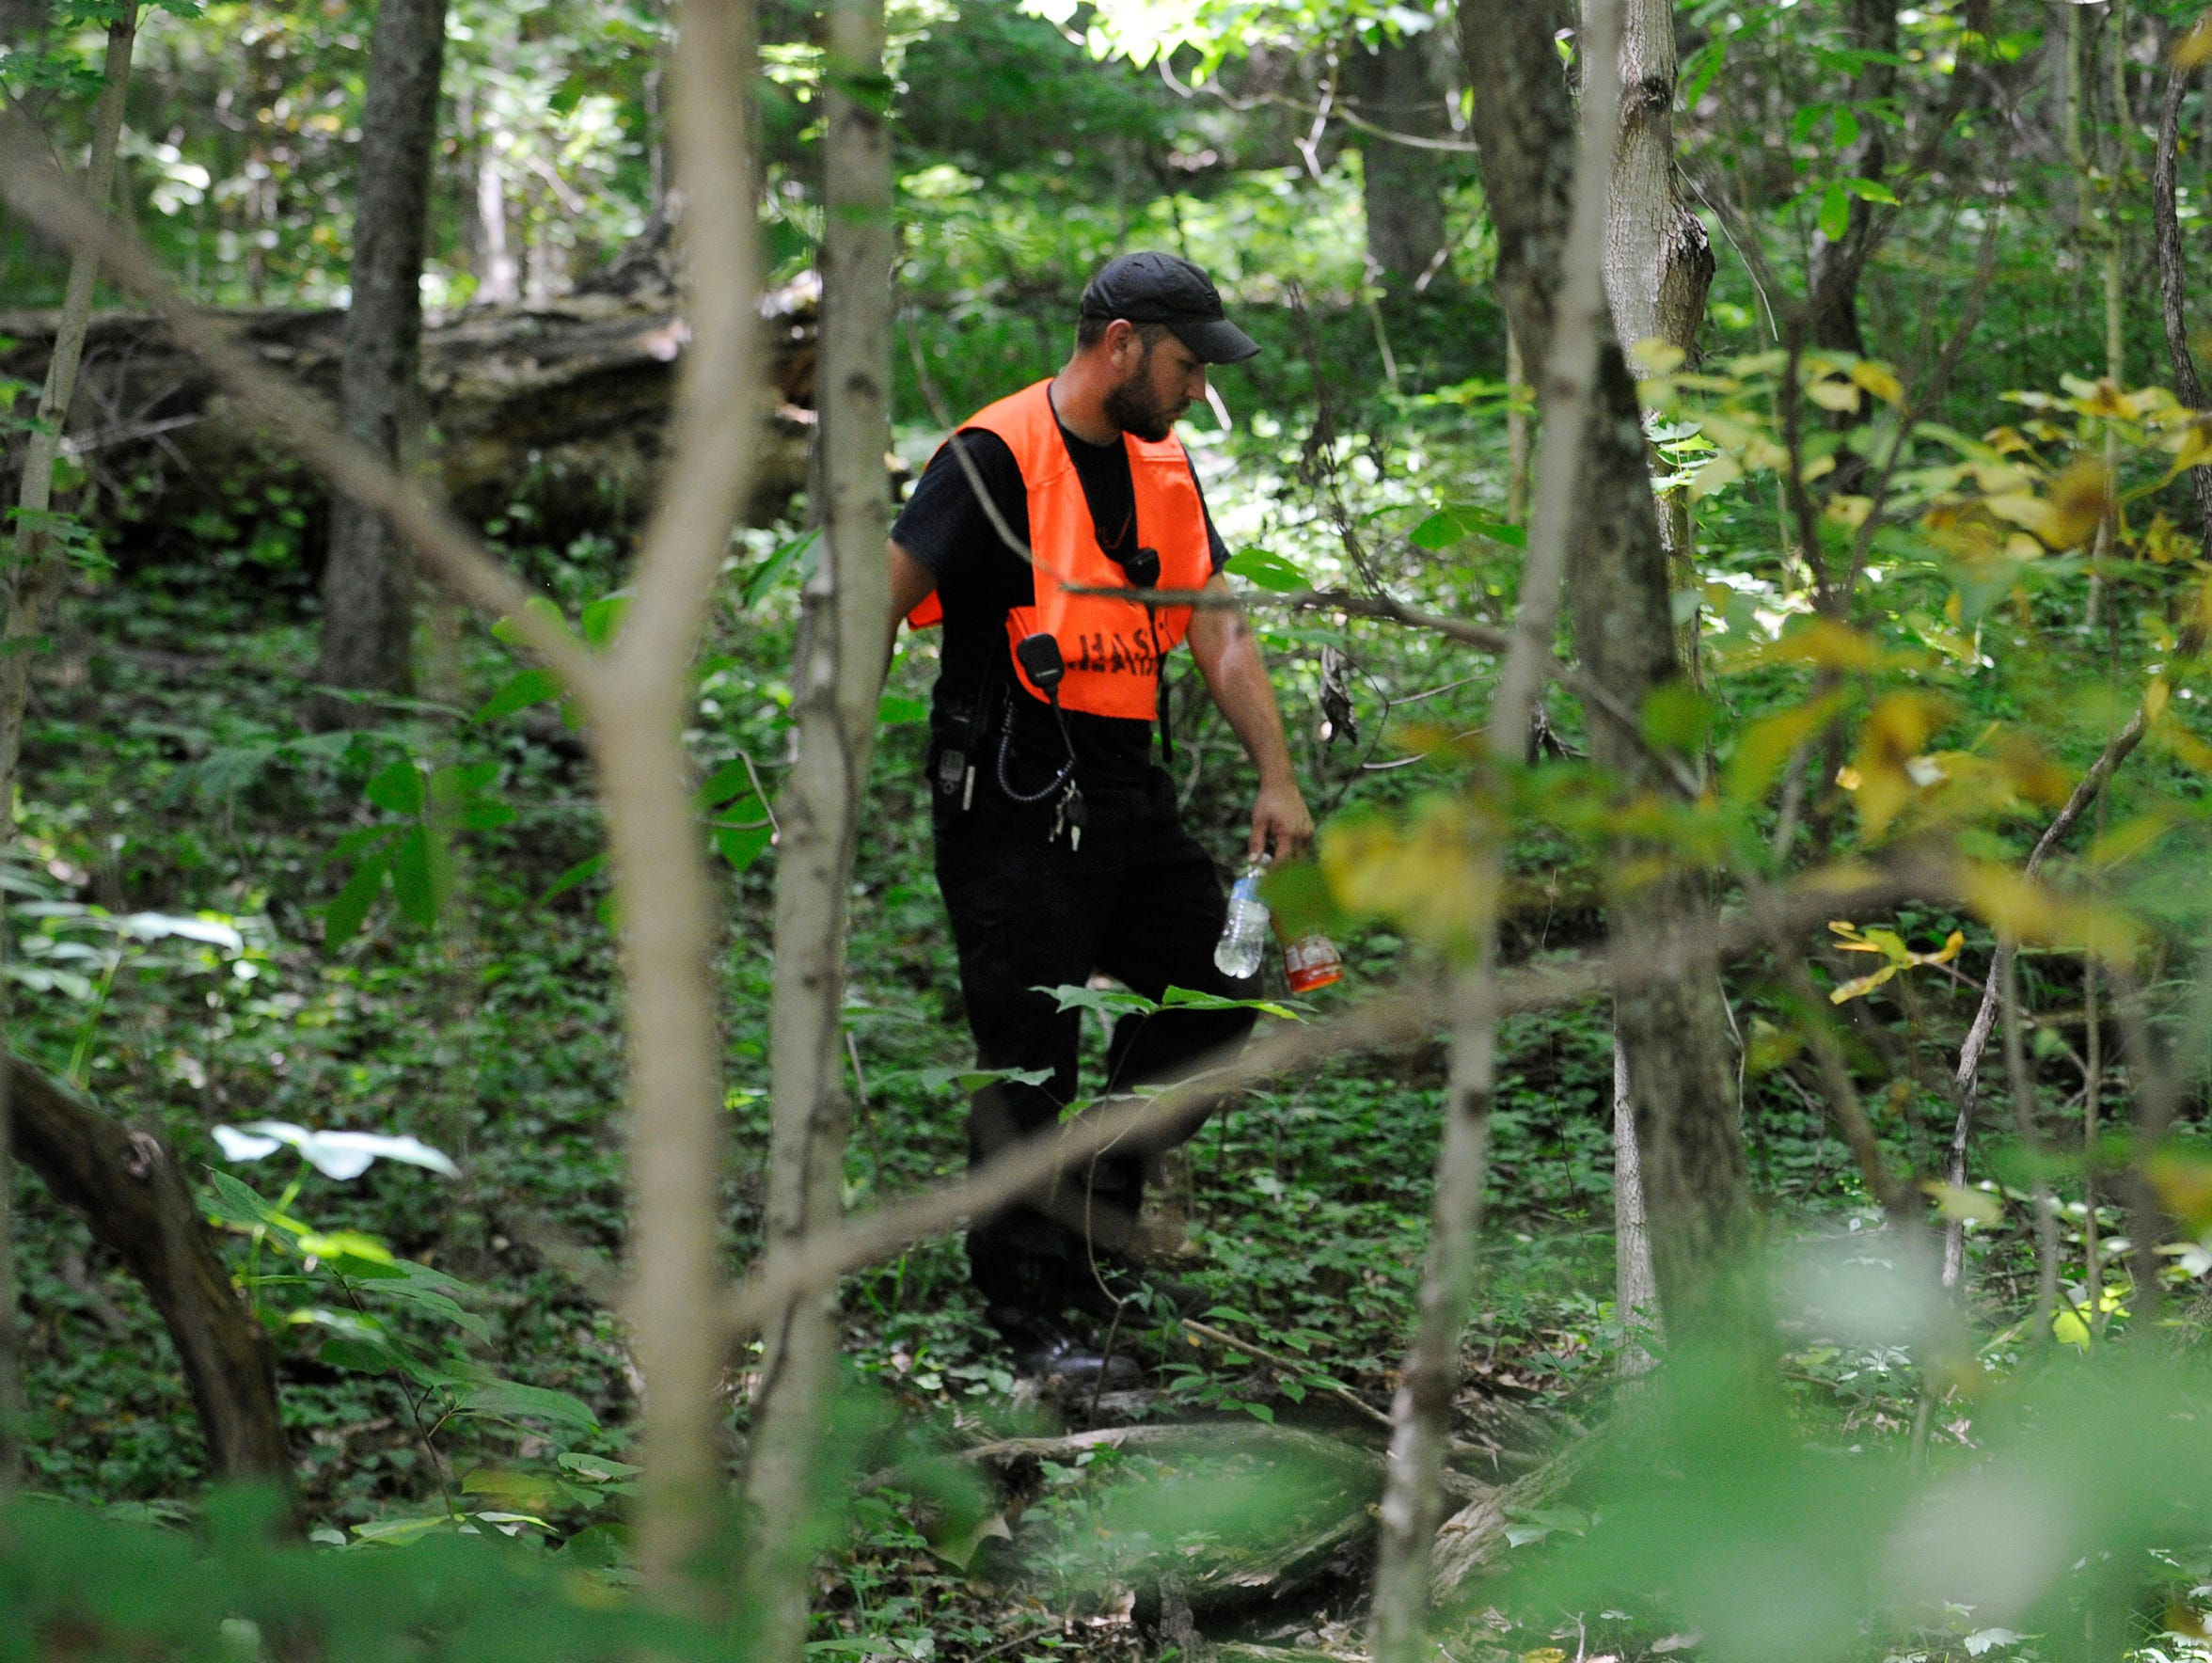 A Ross County Search and Rescue team member searches